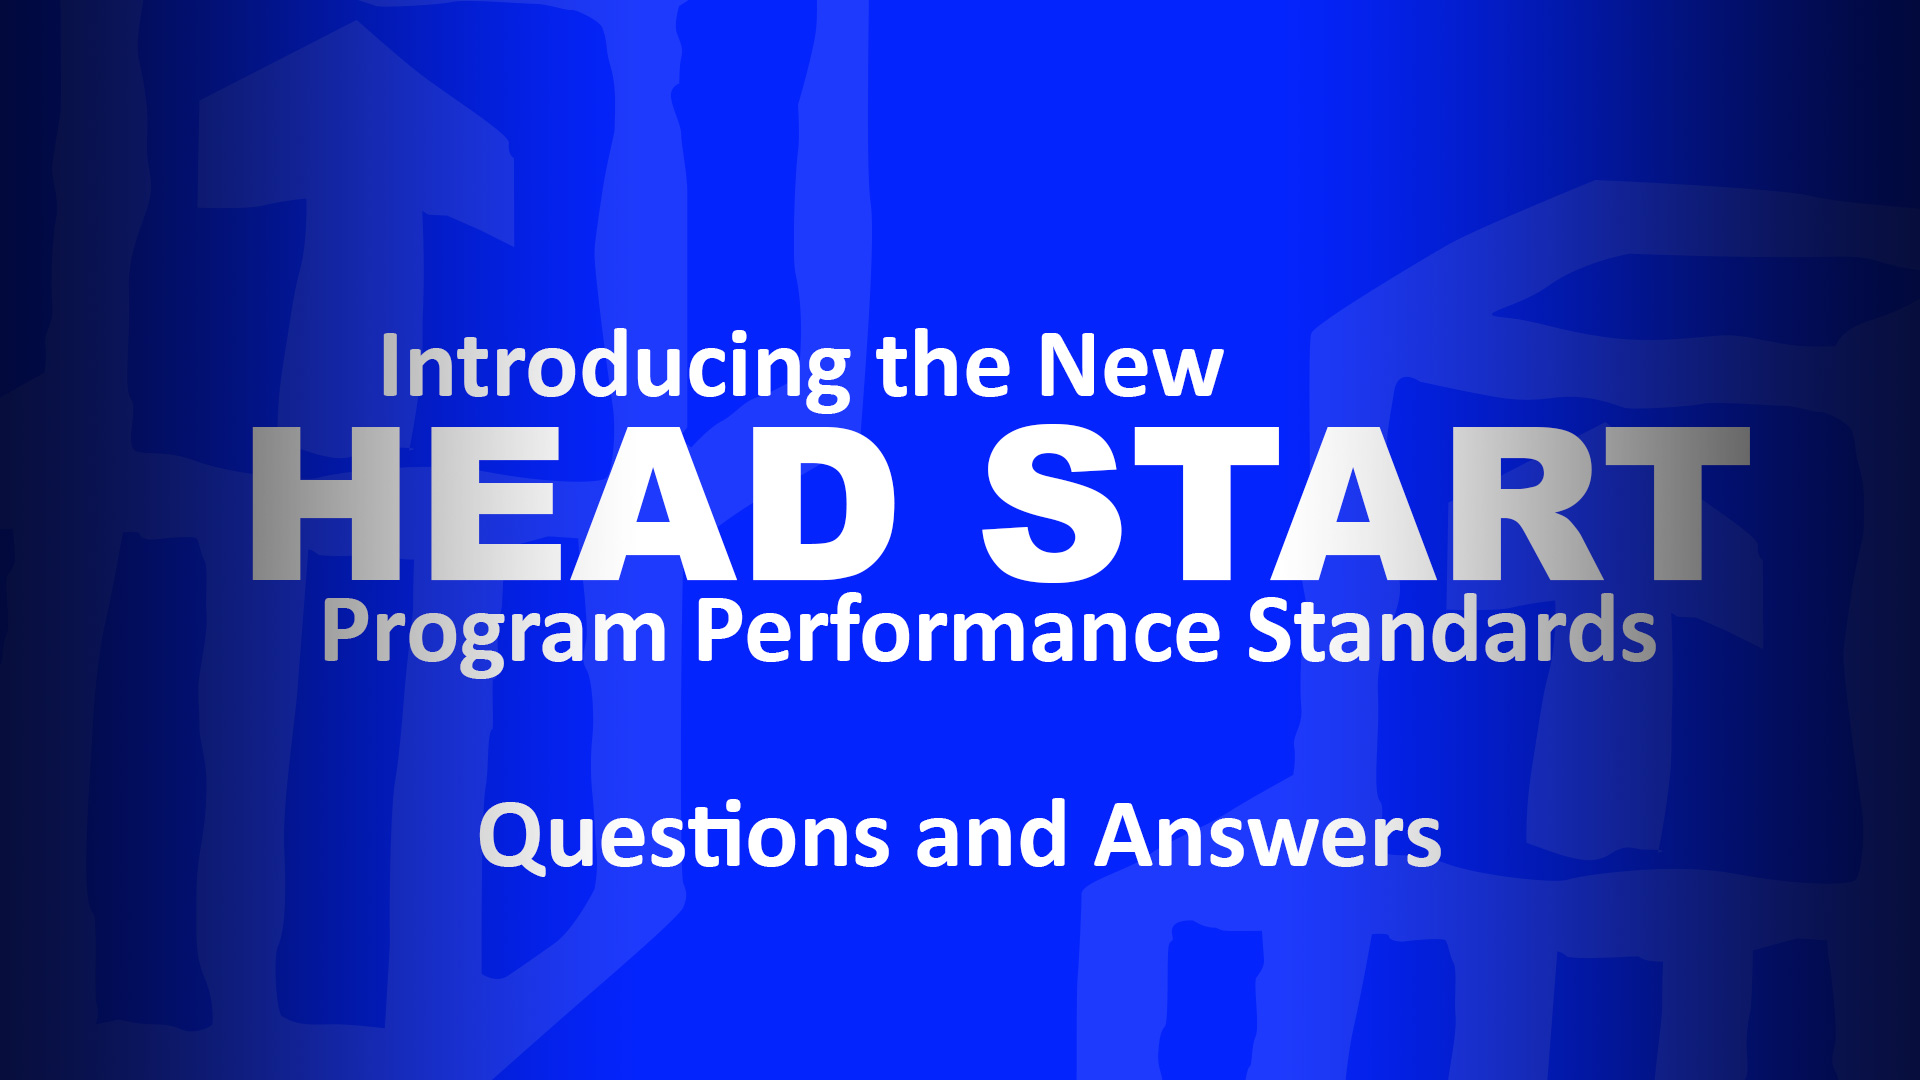 Introducing the New Head Start Program Performance Standards Webcast: Questions and Answers